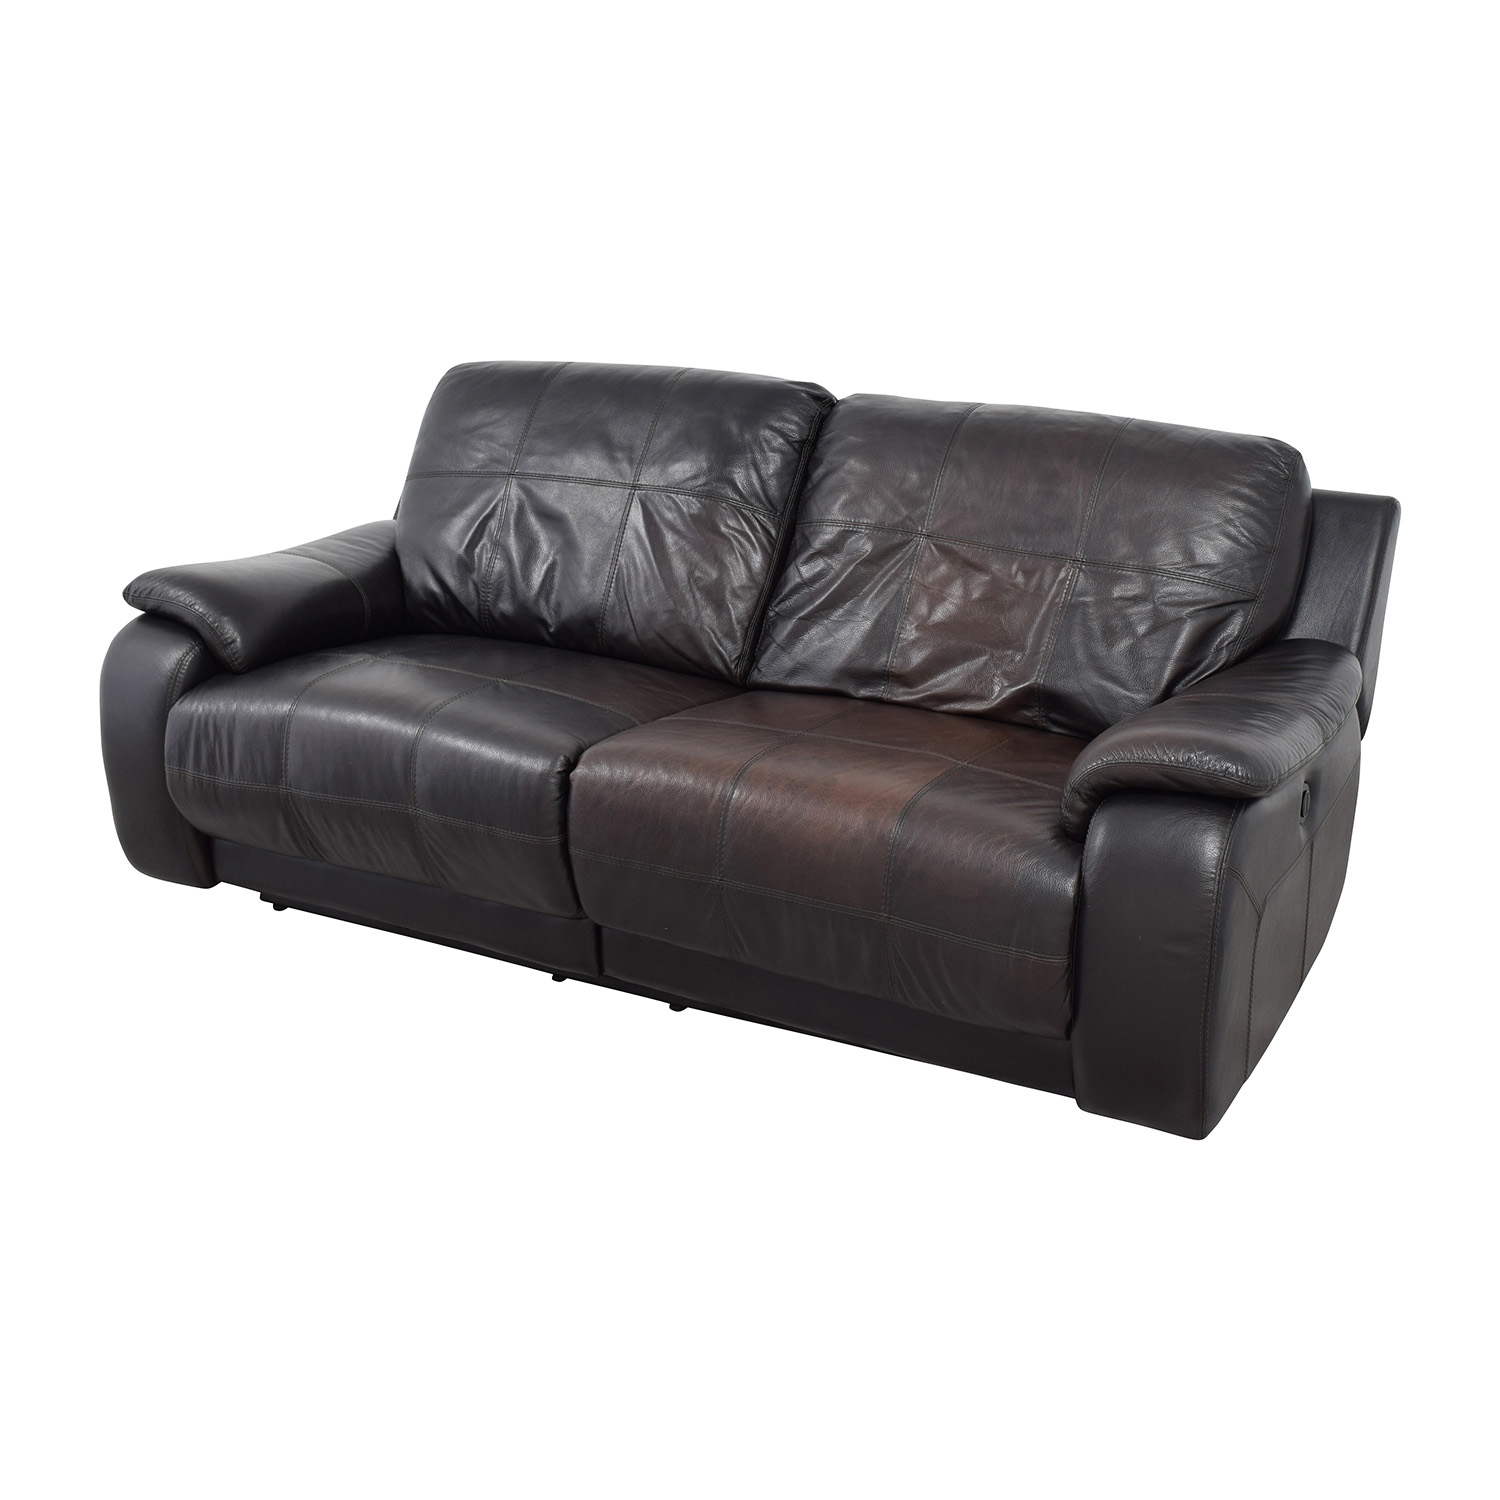 secondhand leather sofas monarch sofa 87% off - raymour and flanigan ...